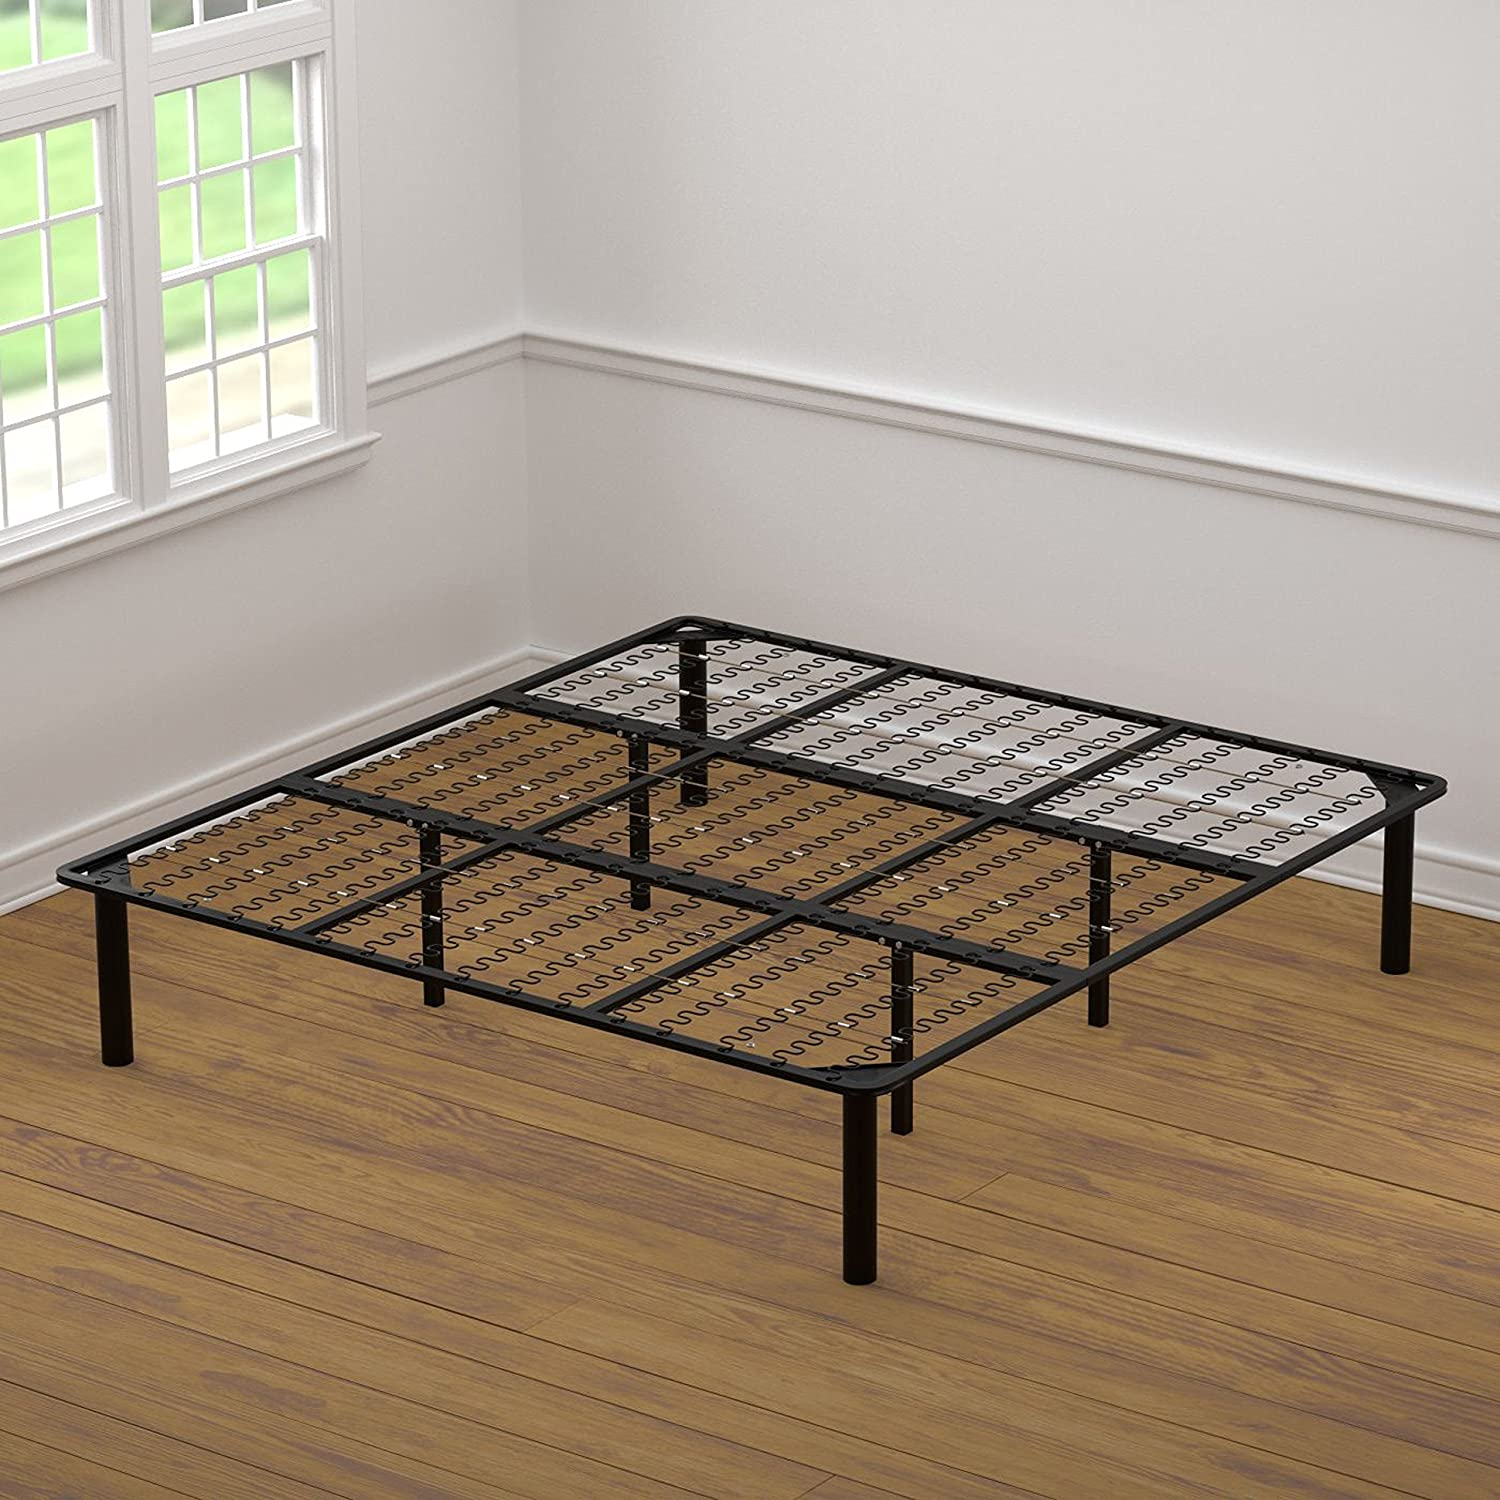 Simple Houseware 14-Inch King Size Mattress Foundation Platform Bed Frame, King